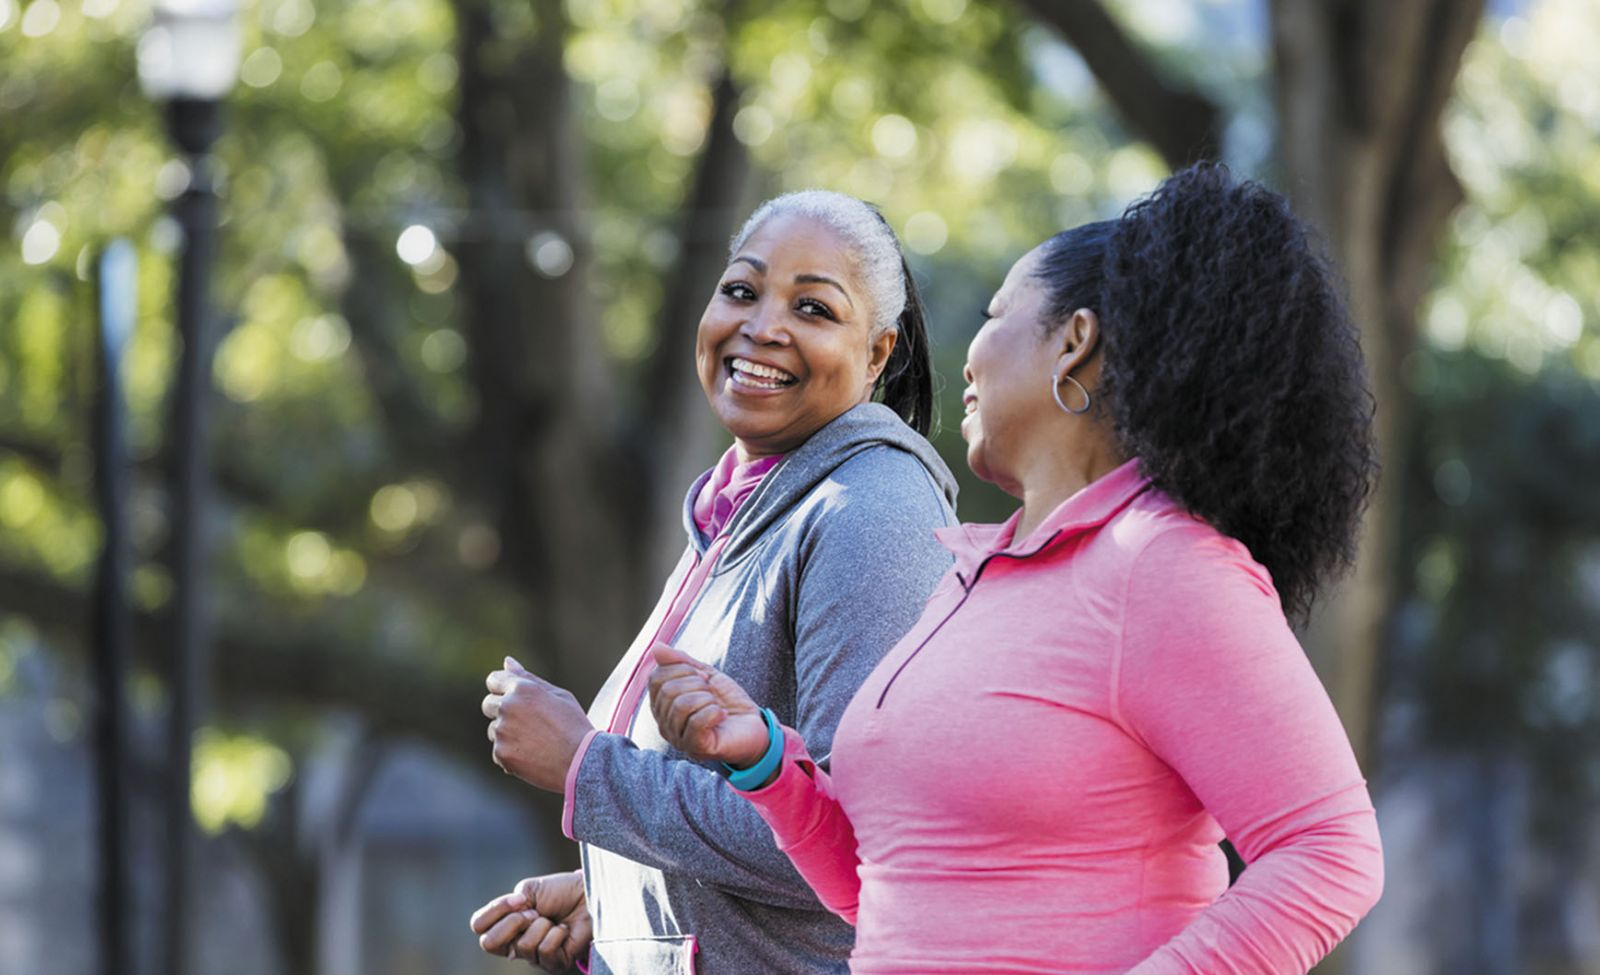 More Evidence That Growing Up Poor May >> More Evidence That Exercise Can Boost Mood Harvard Health